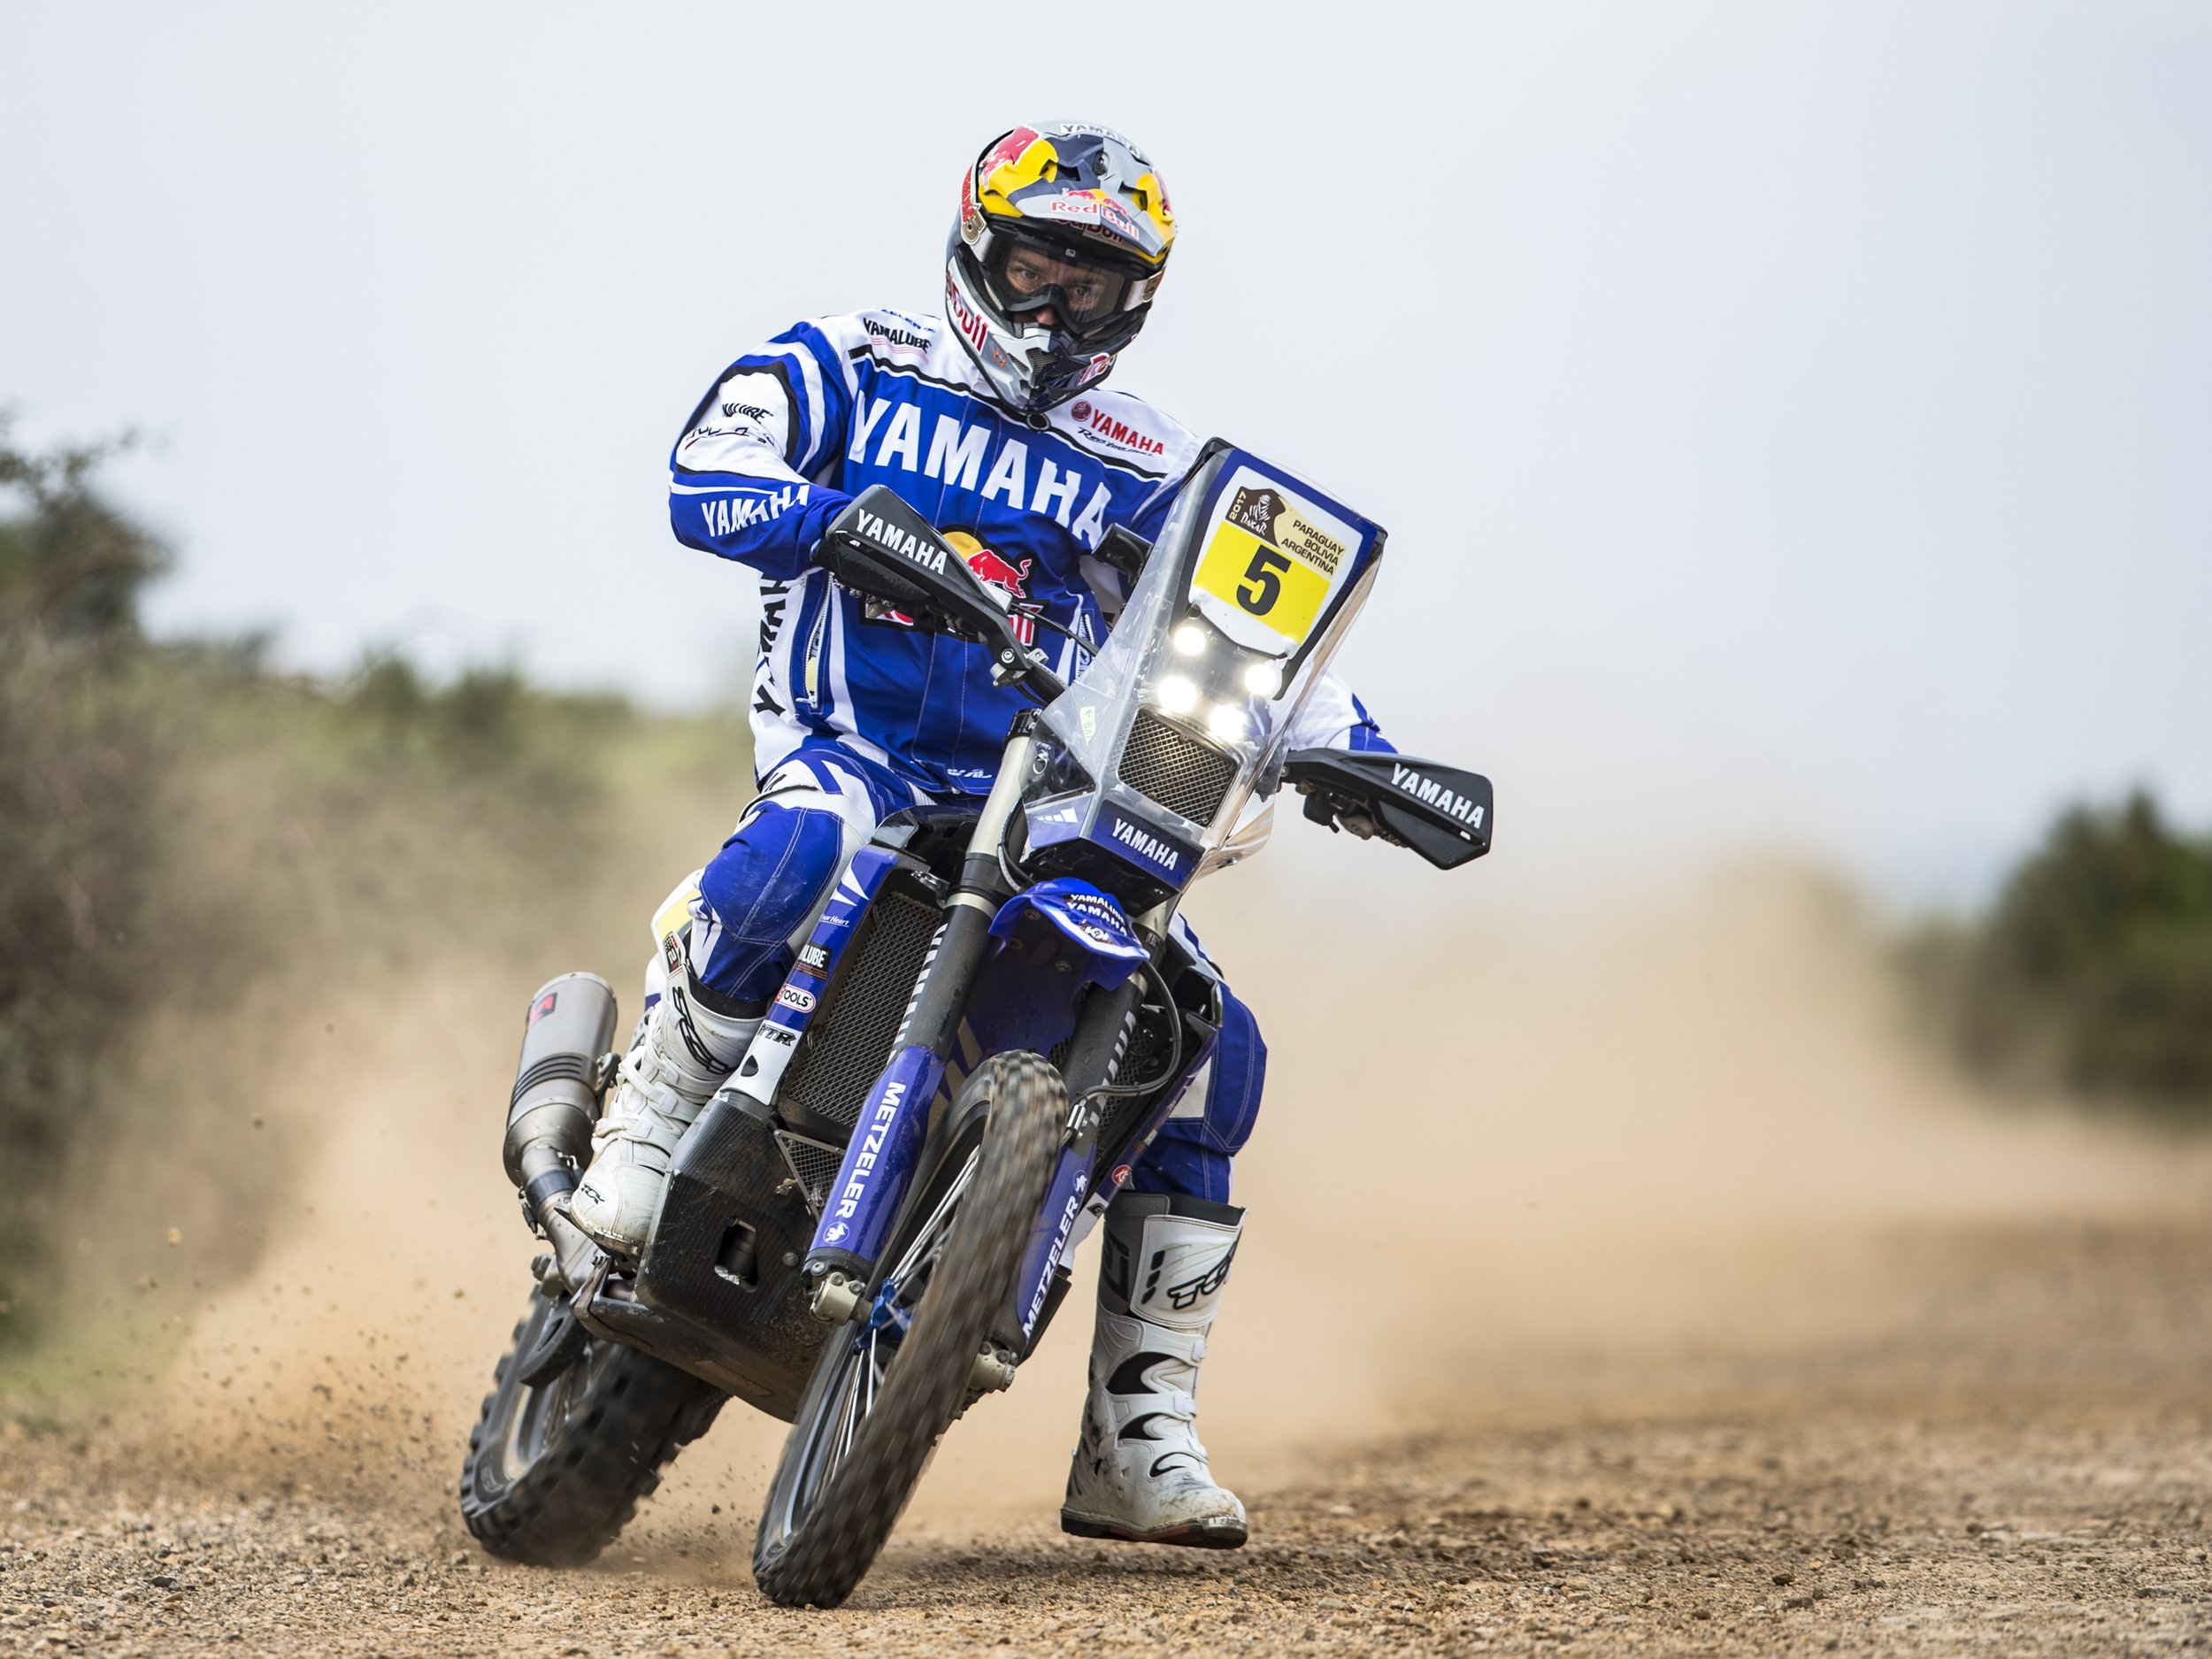 2017_WR450FRALLY_ACT_001.jpg